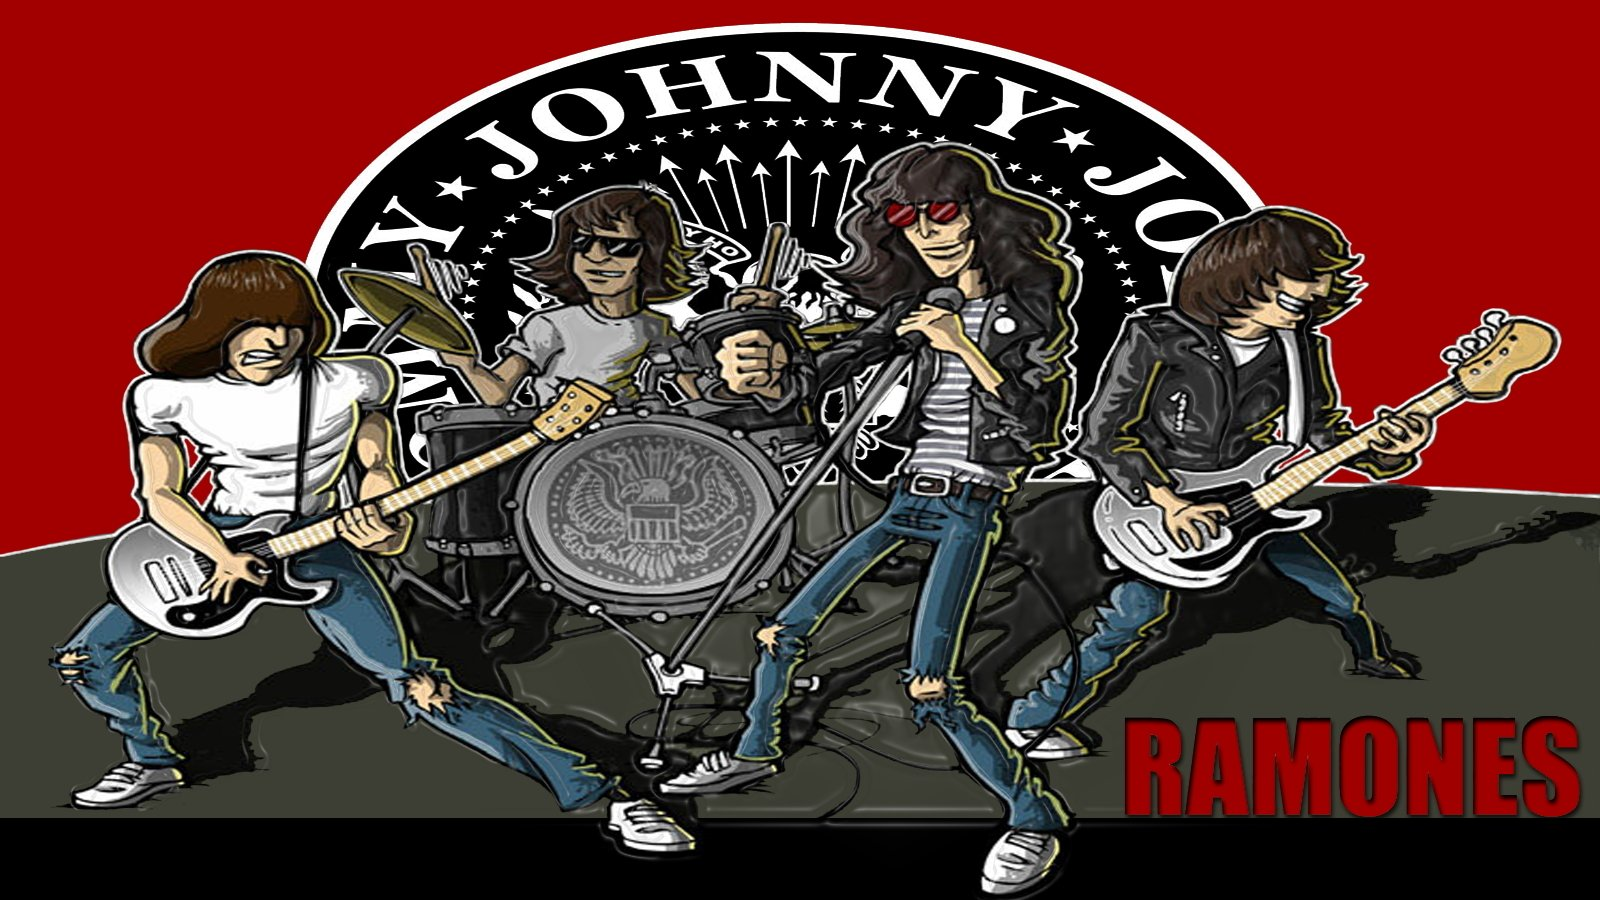 The Ramones Wallpaper and Background Image | 1600x900 | ID ...